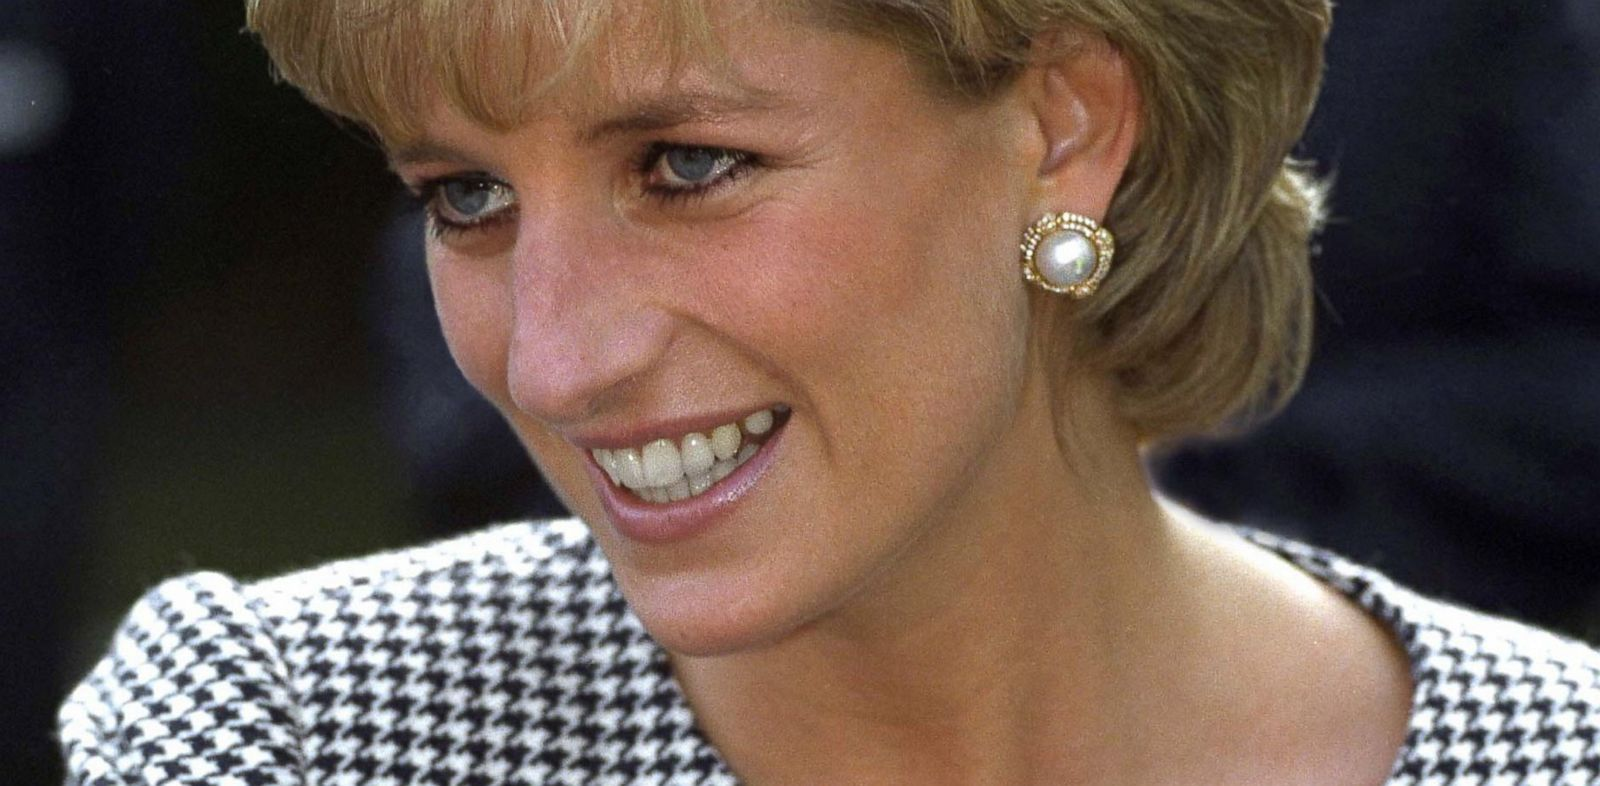 PHOTO: Diana, Princess Of Wales is shown in Birmingham, England, Oct. 31, 1995.